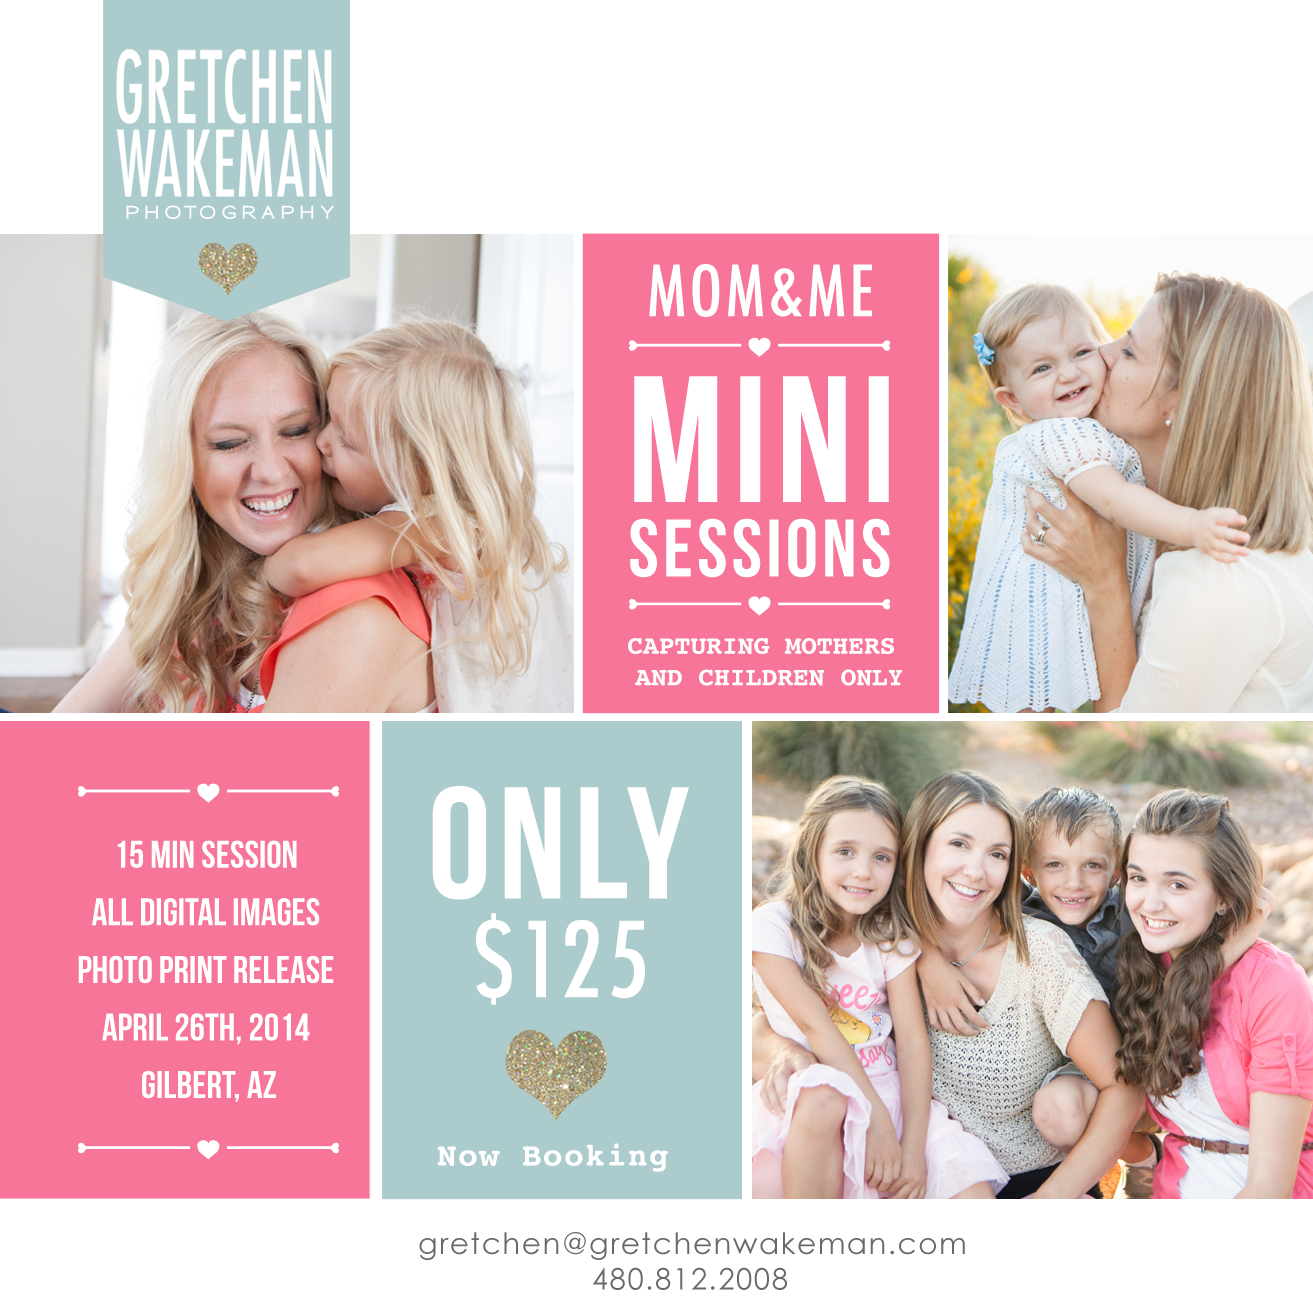 """MOMMY & ME"" MINI SESSIONS"